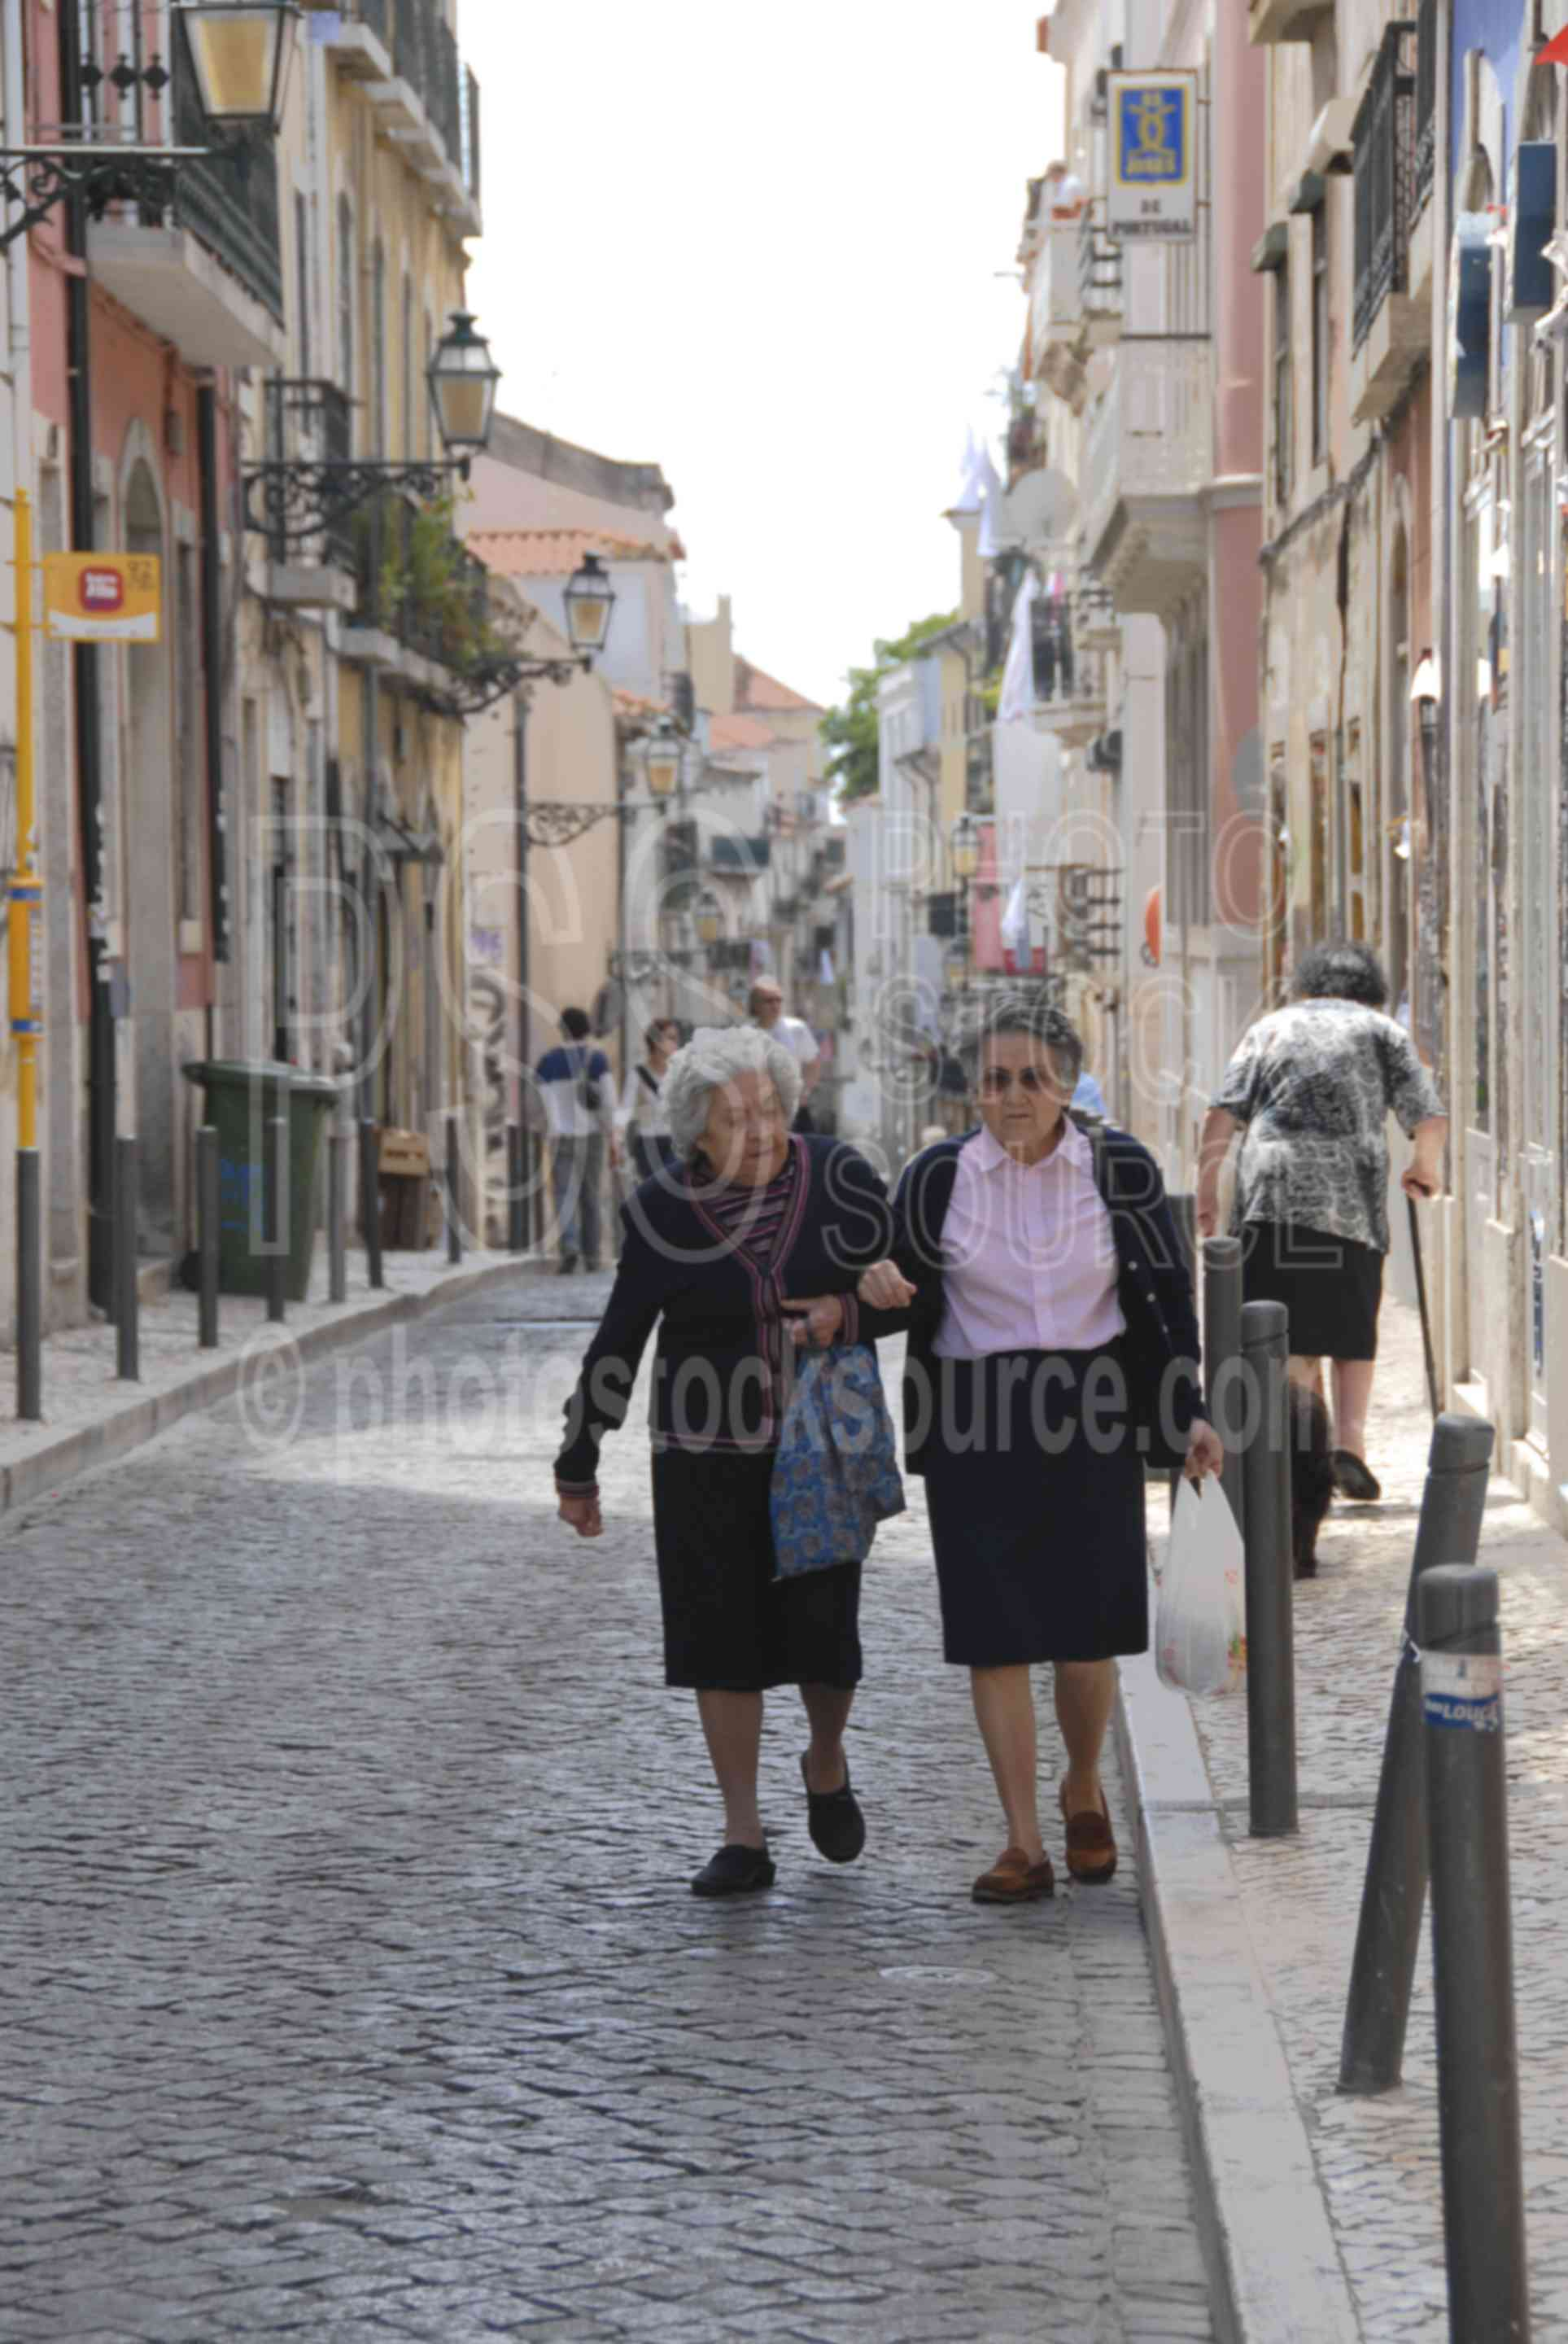 Old Ladies,women,ladies,people,woman,friends,old friends,street